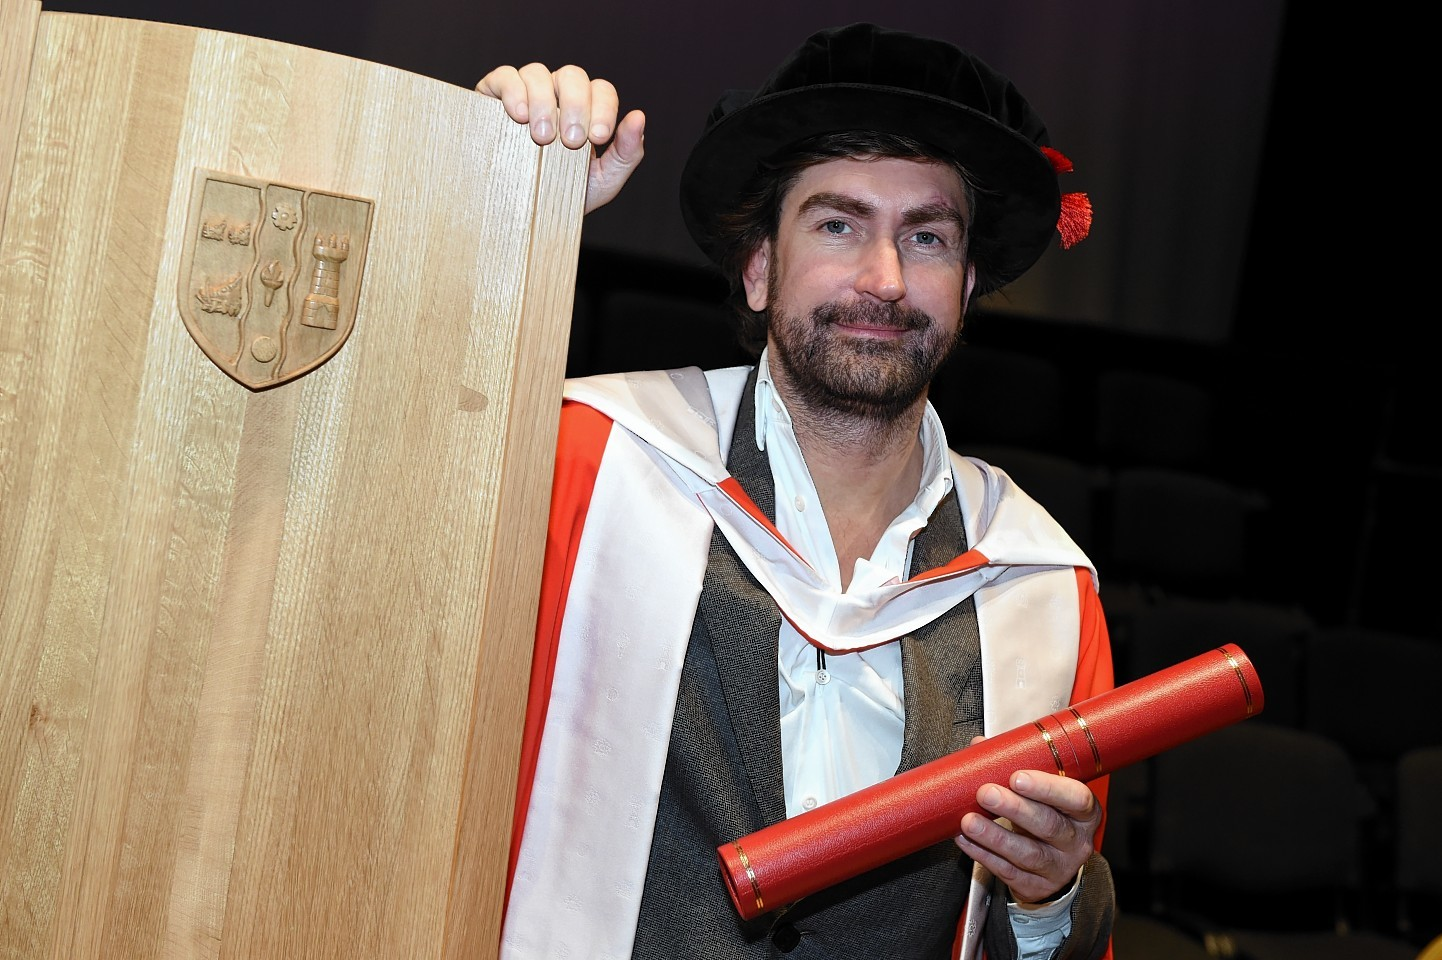 RGU Graduations at HMT friday morning ;  Pictured - Honorary grad - Leslie Benzies.      Picture by Kami Thomson    17-07-15